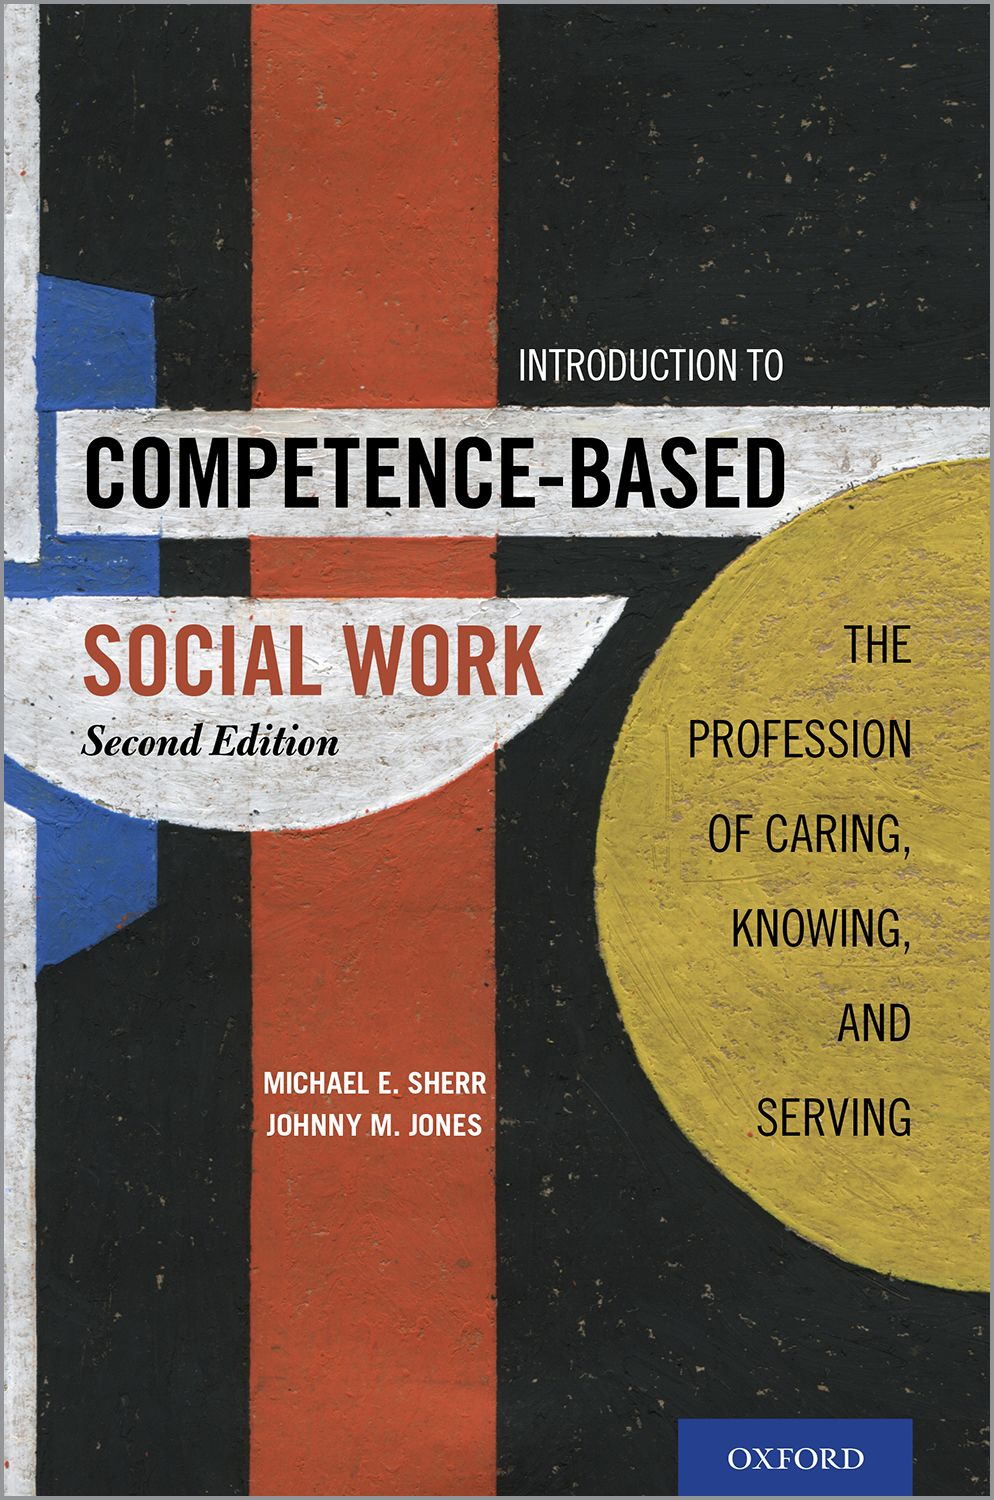 Introduction to Competence-Based Social Work 2e